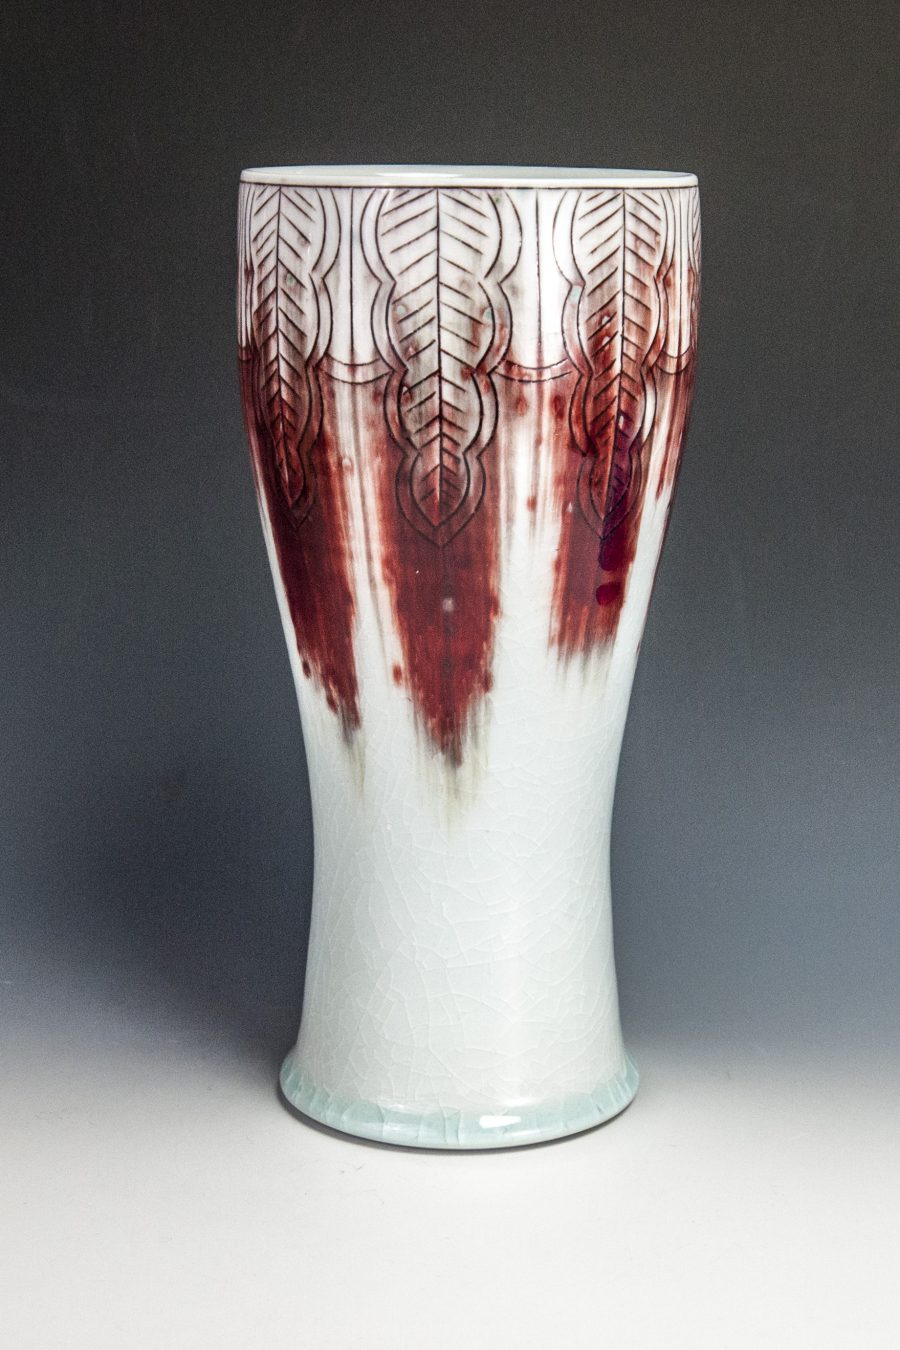 "Red Blush Vase - Size: 9"" x 4.5"" x 4.5"" - by Steven Young Lee"